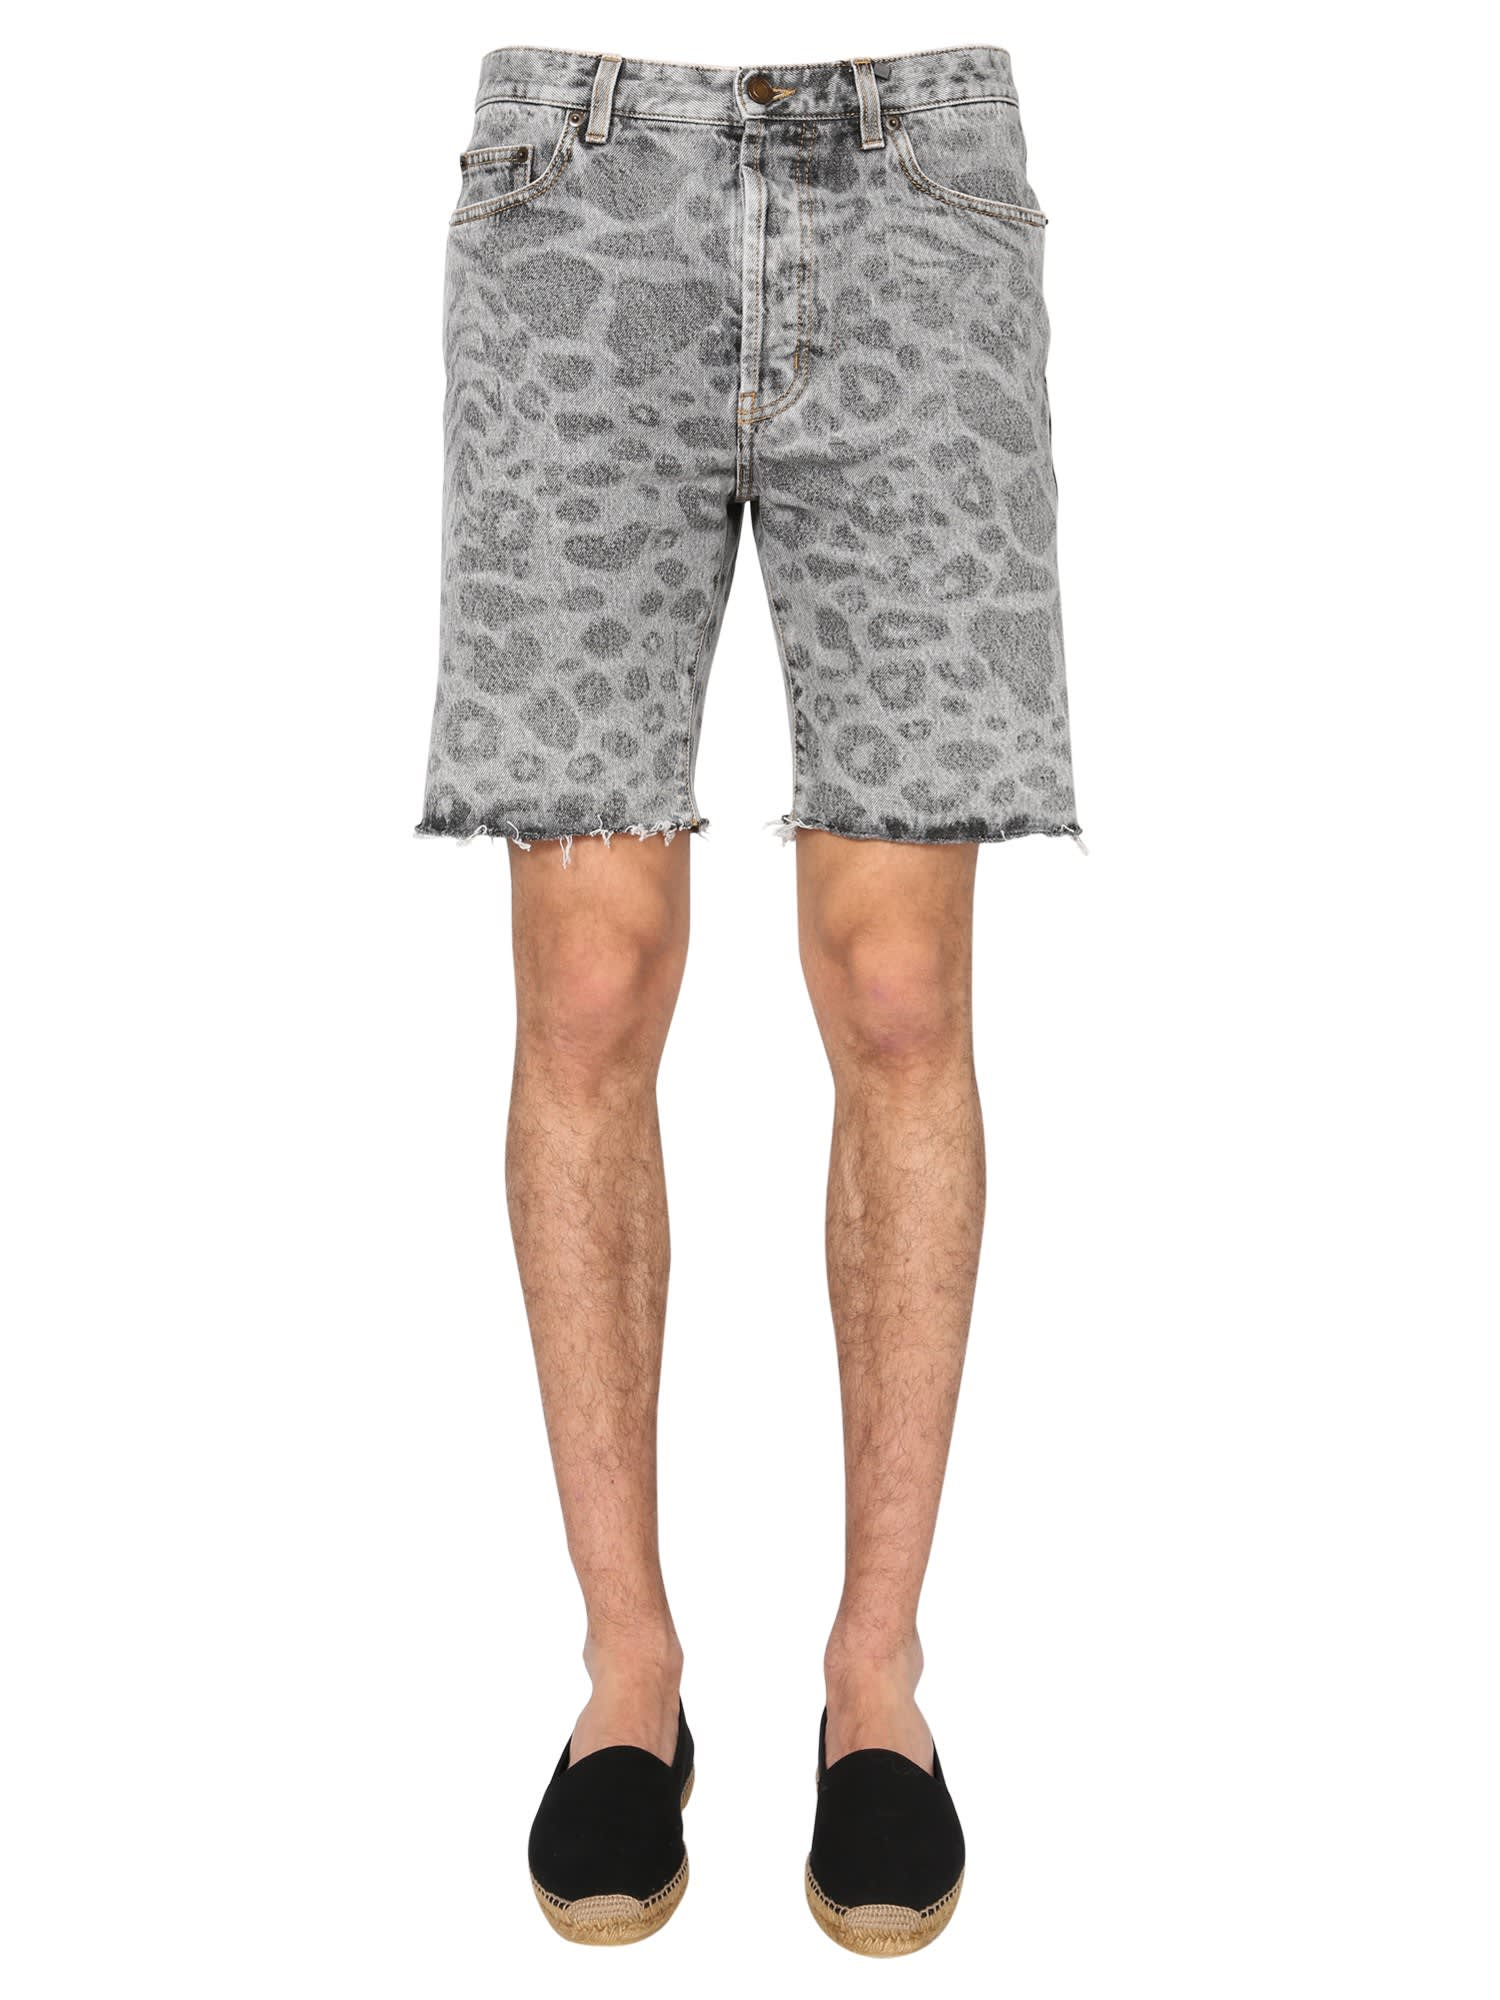 Saint Laurent Jeans SHORTS WITH SPOTTED PRINT